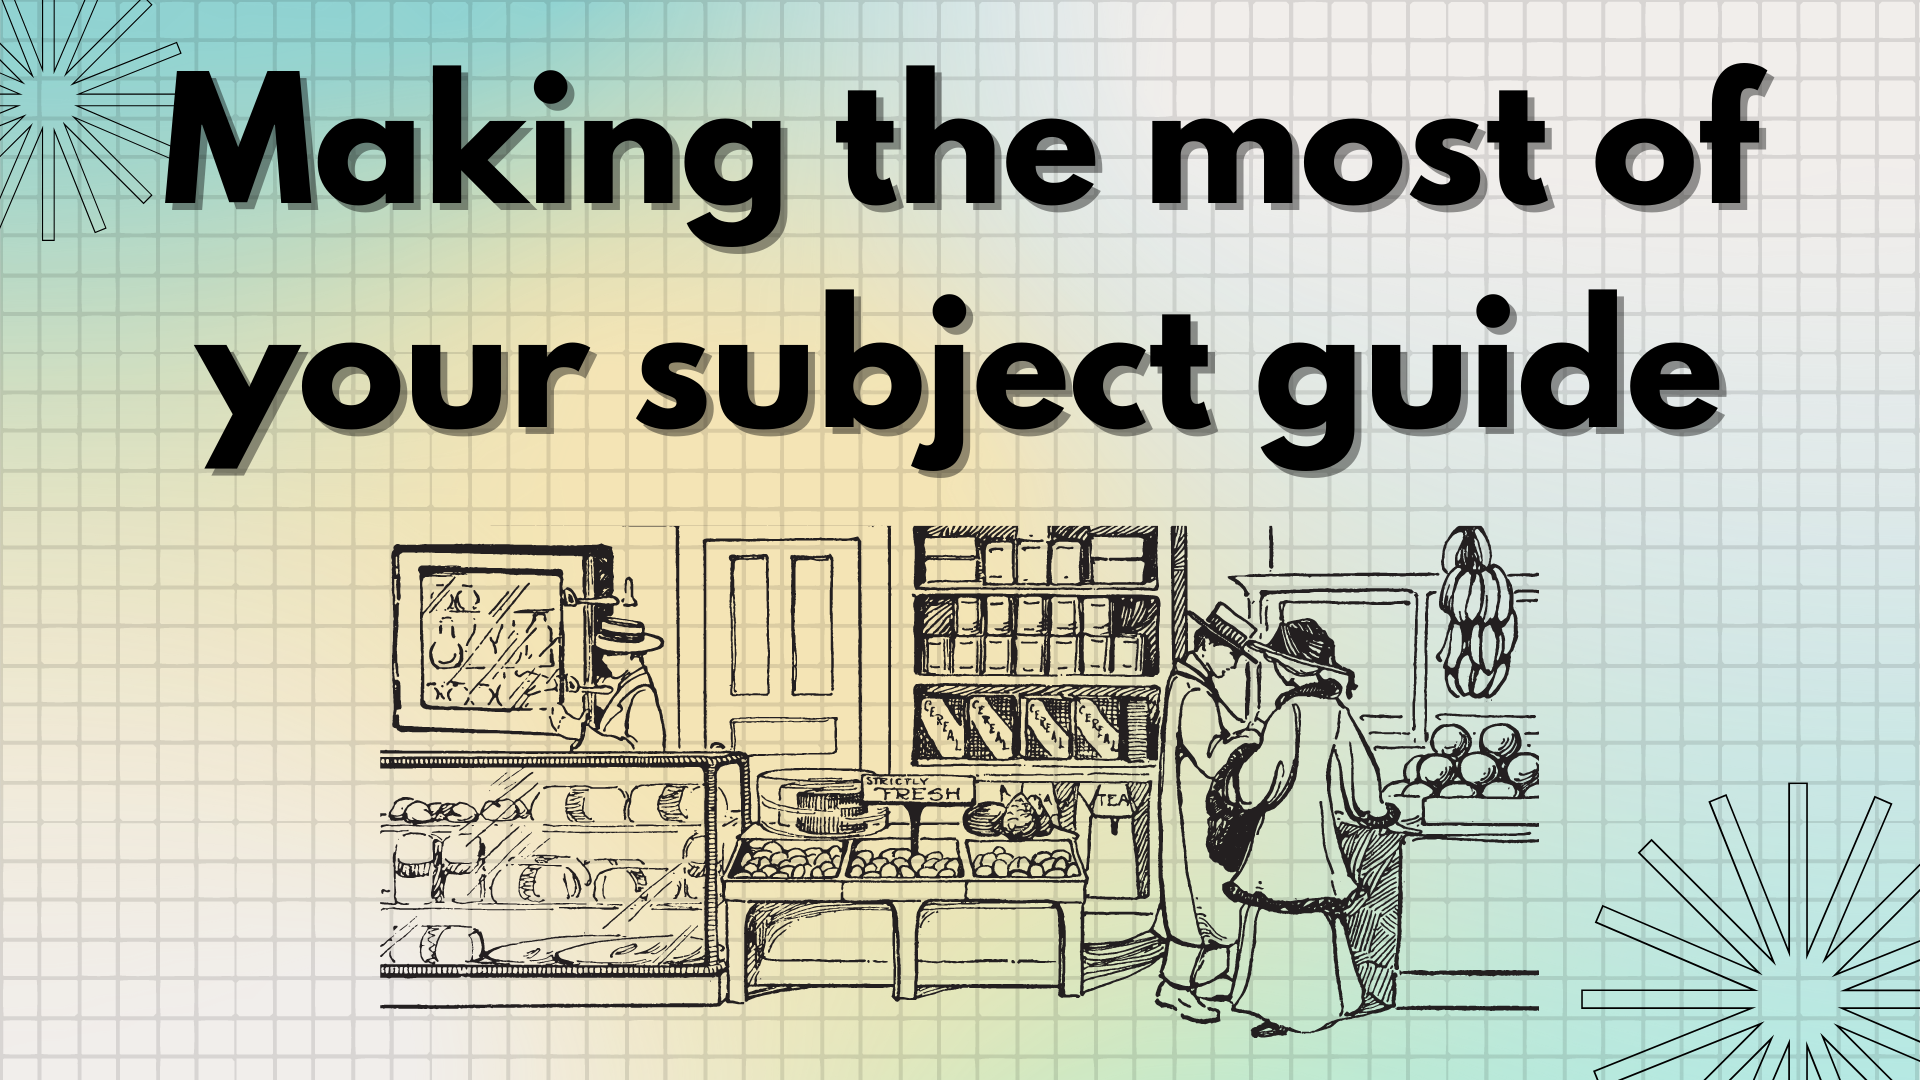 Link to making the most of your subject guide video